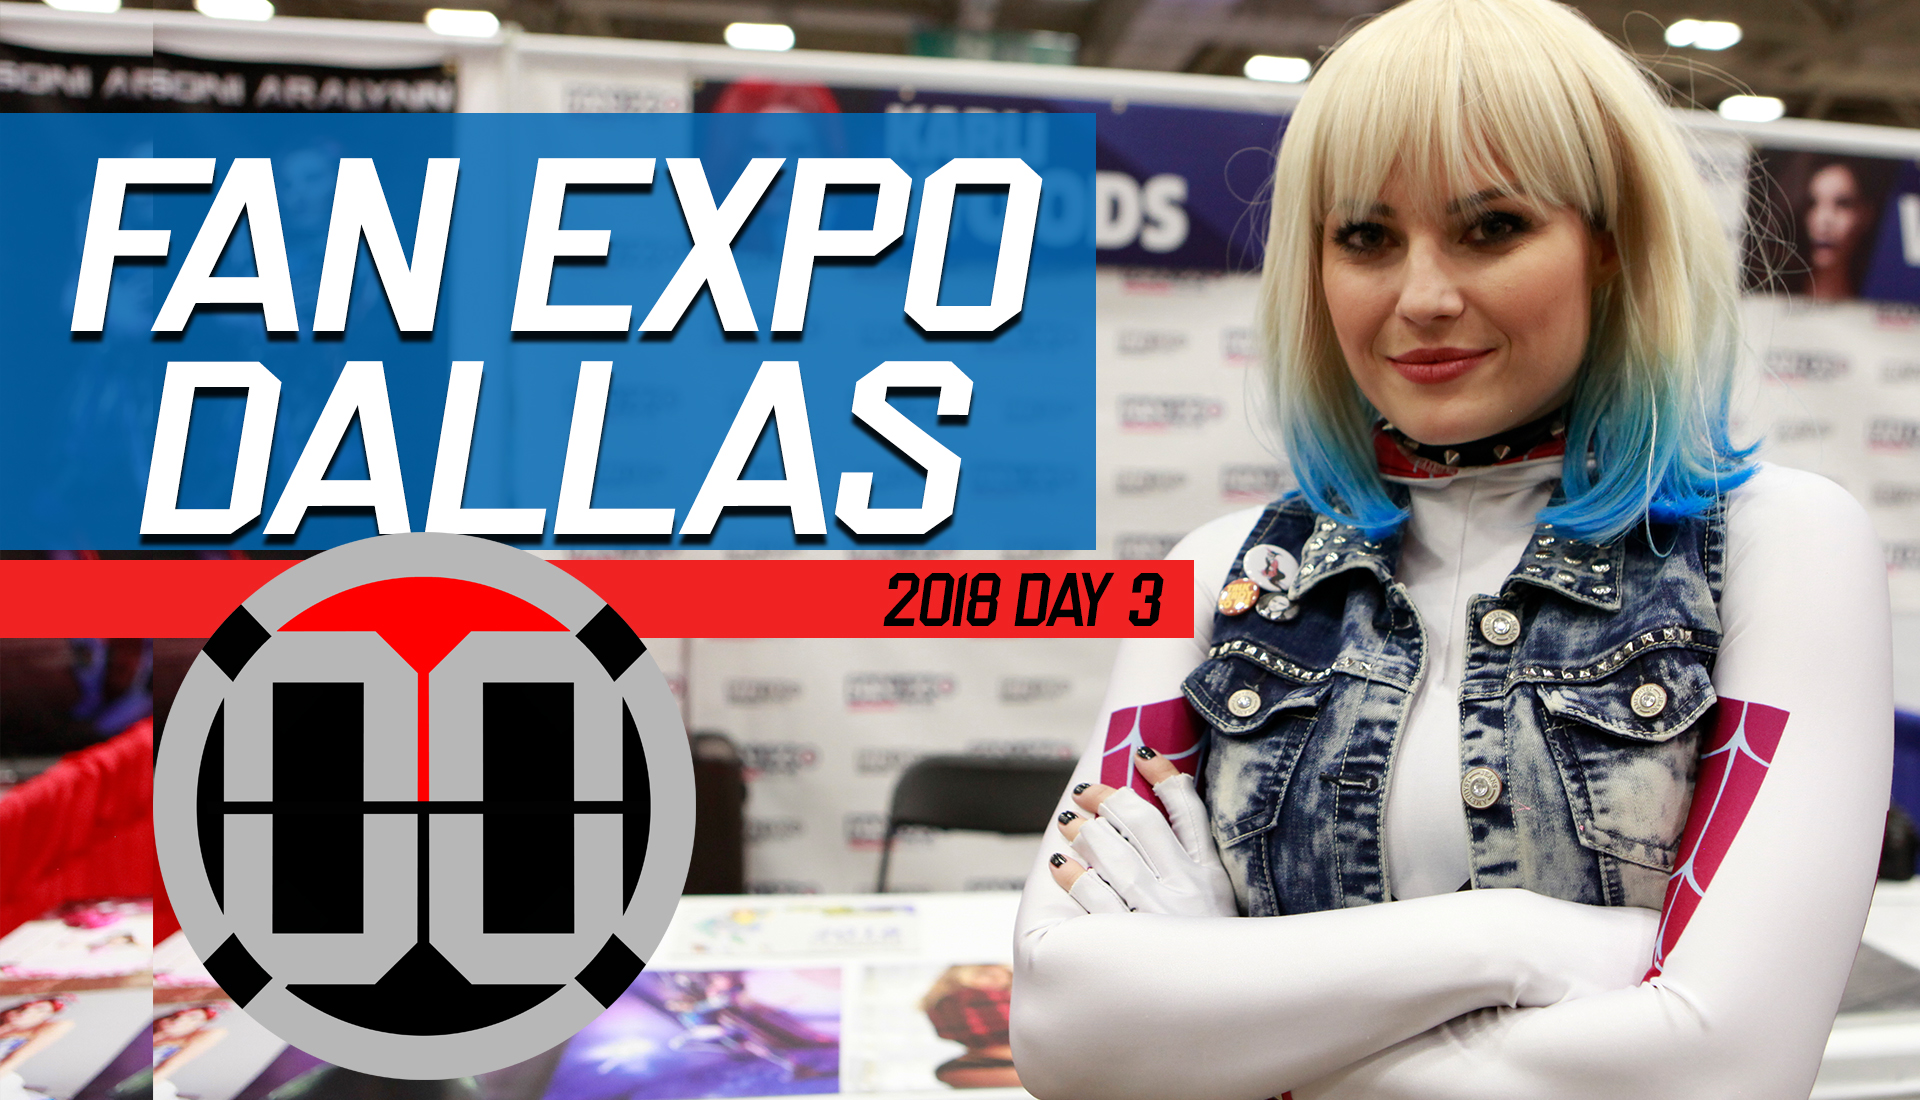 Fan Expo Dallas 2018 Day 3